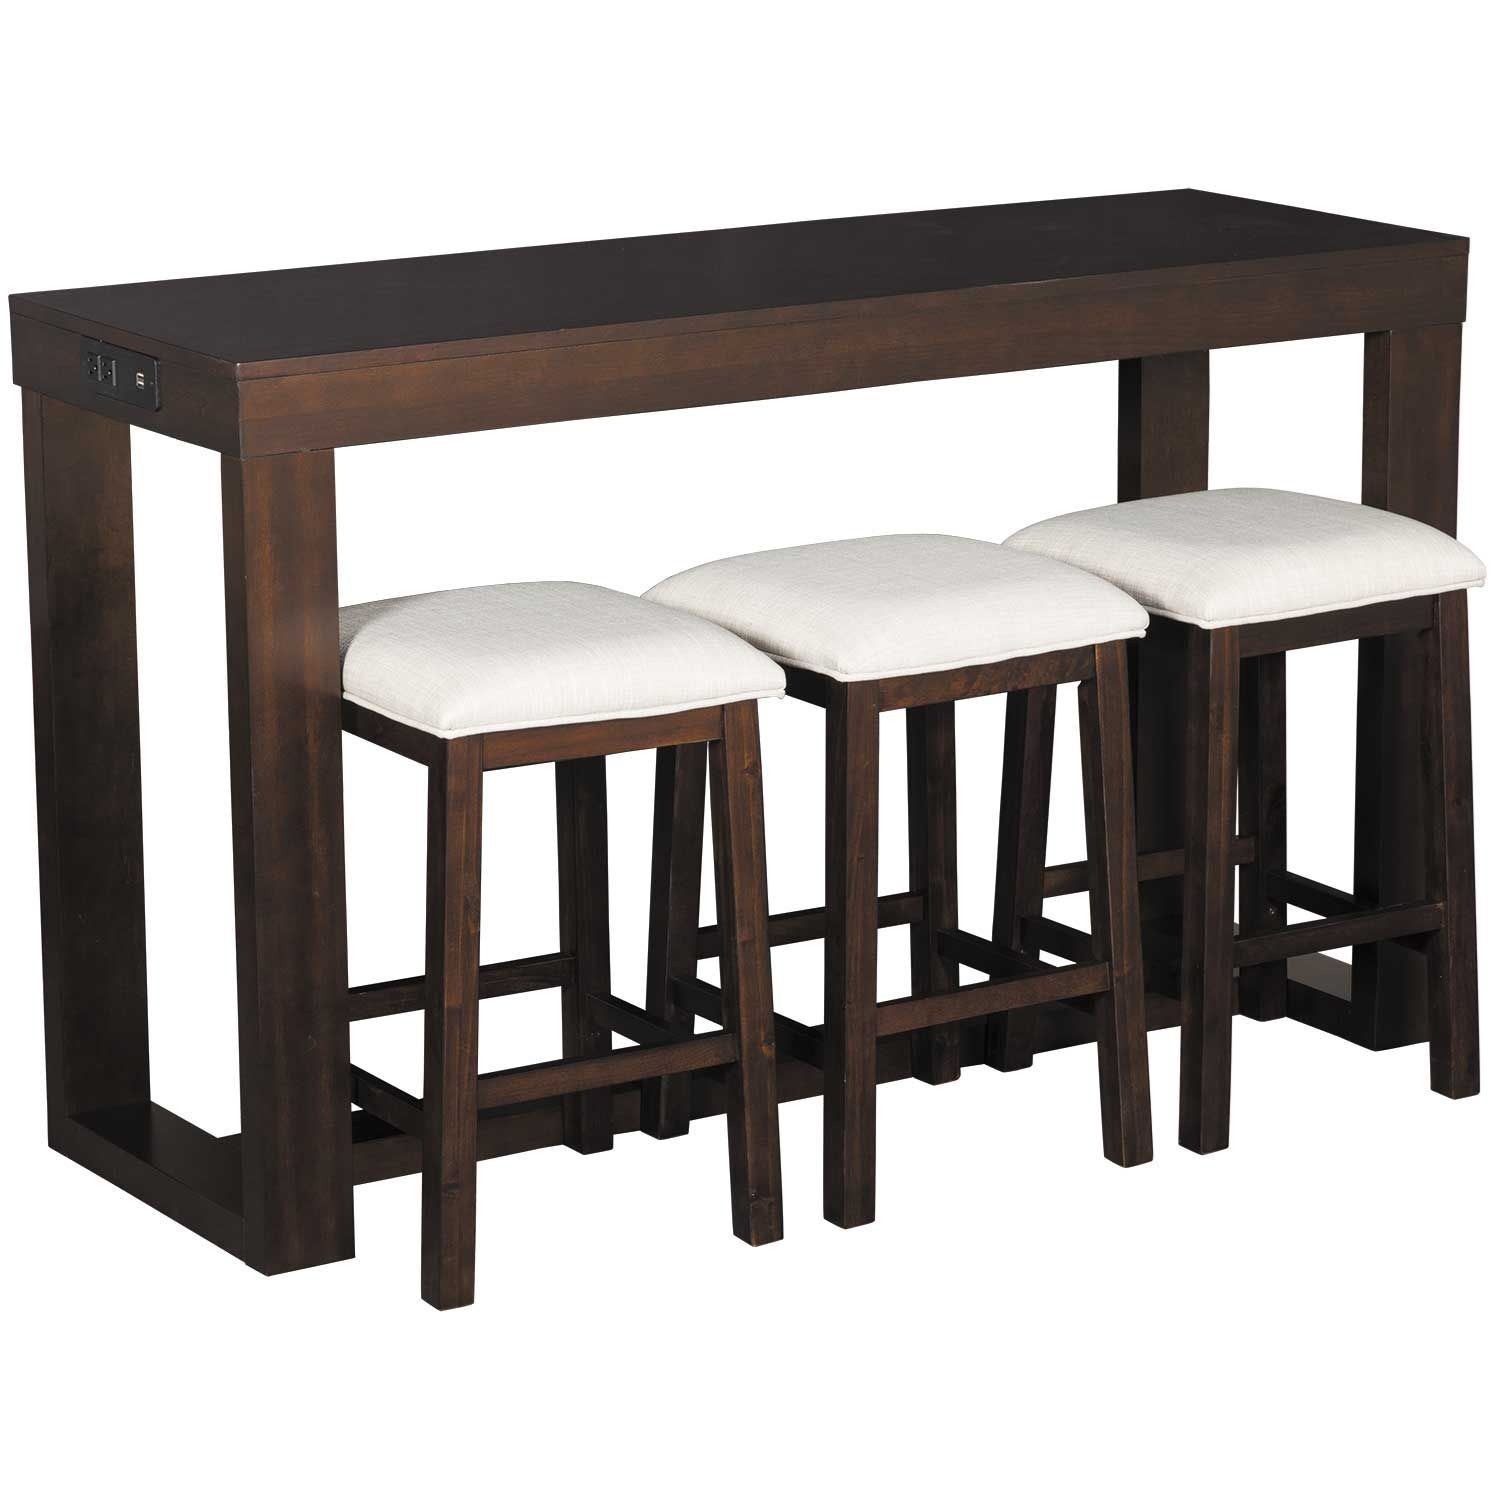 Picture of Hardy Bar Table With Stools